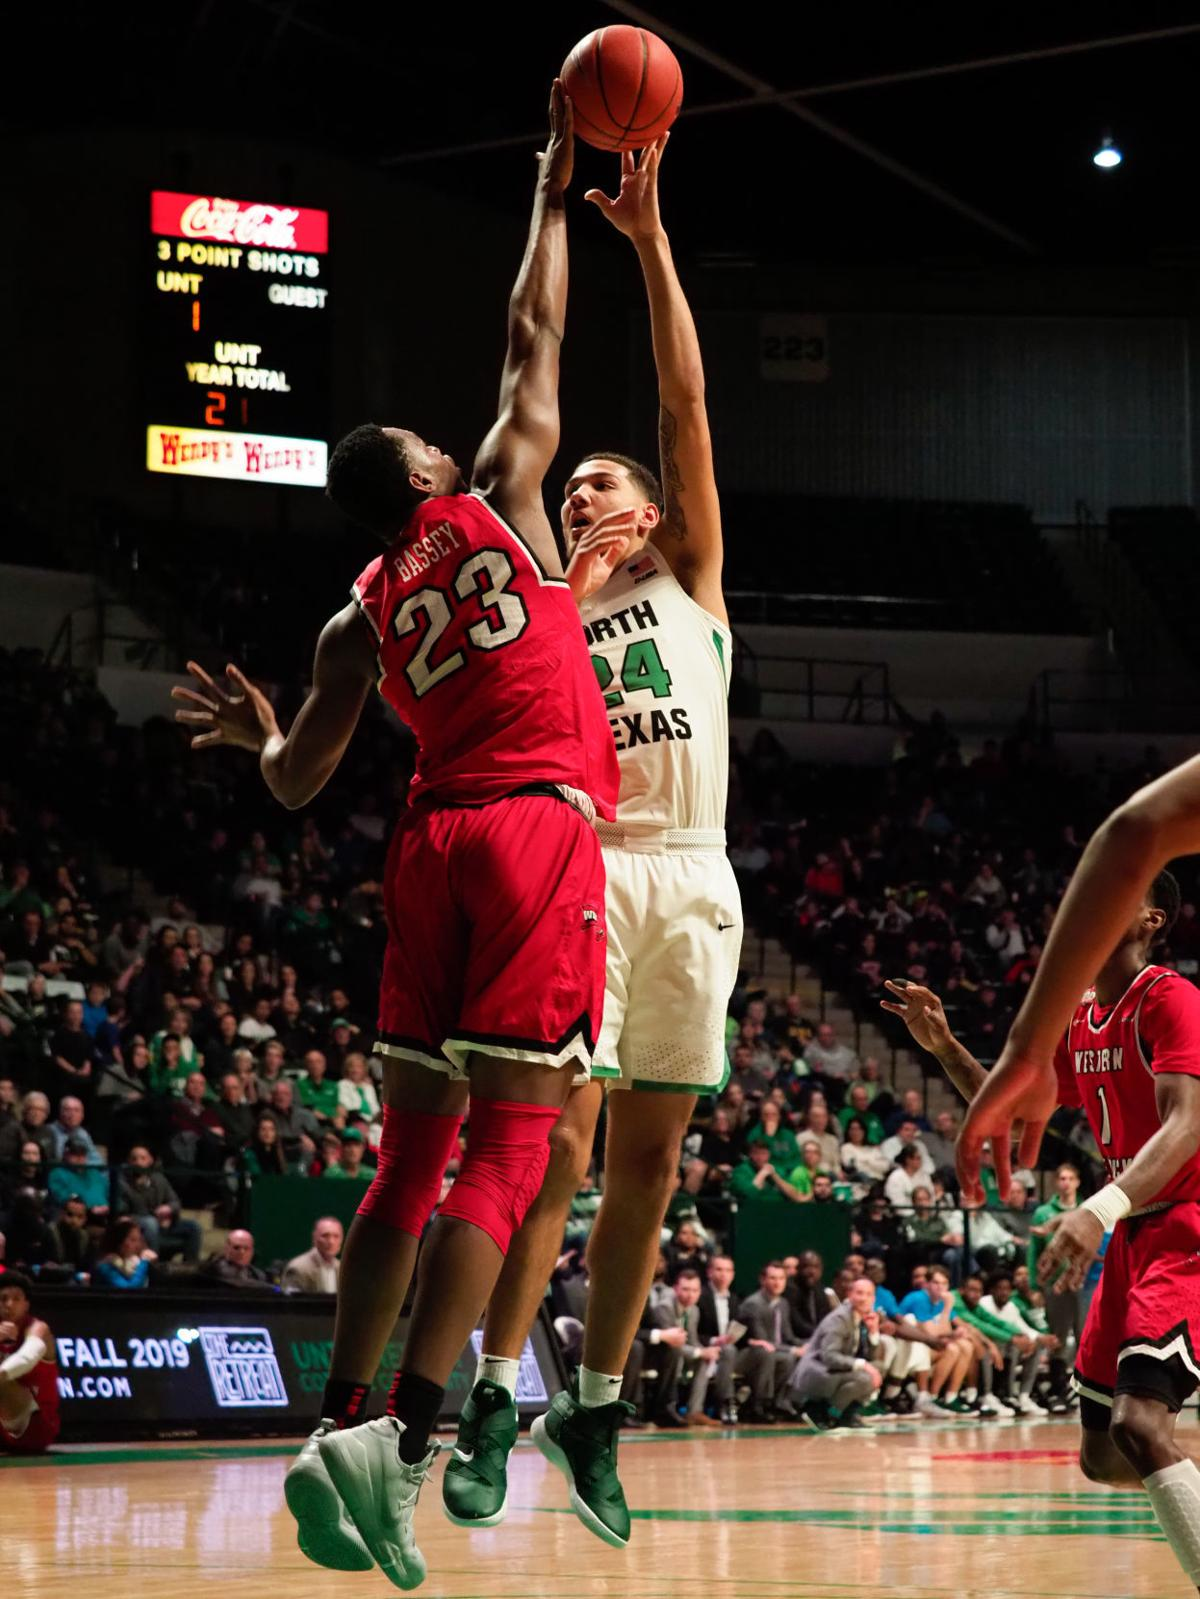 WKU-North Texas (3) 2-9-19